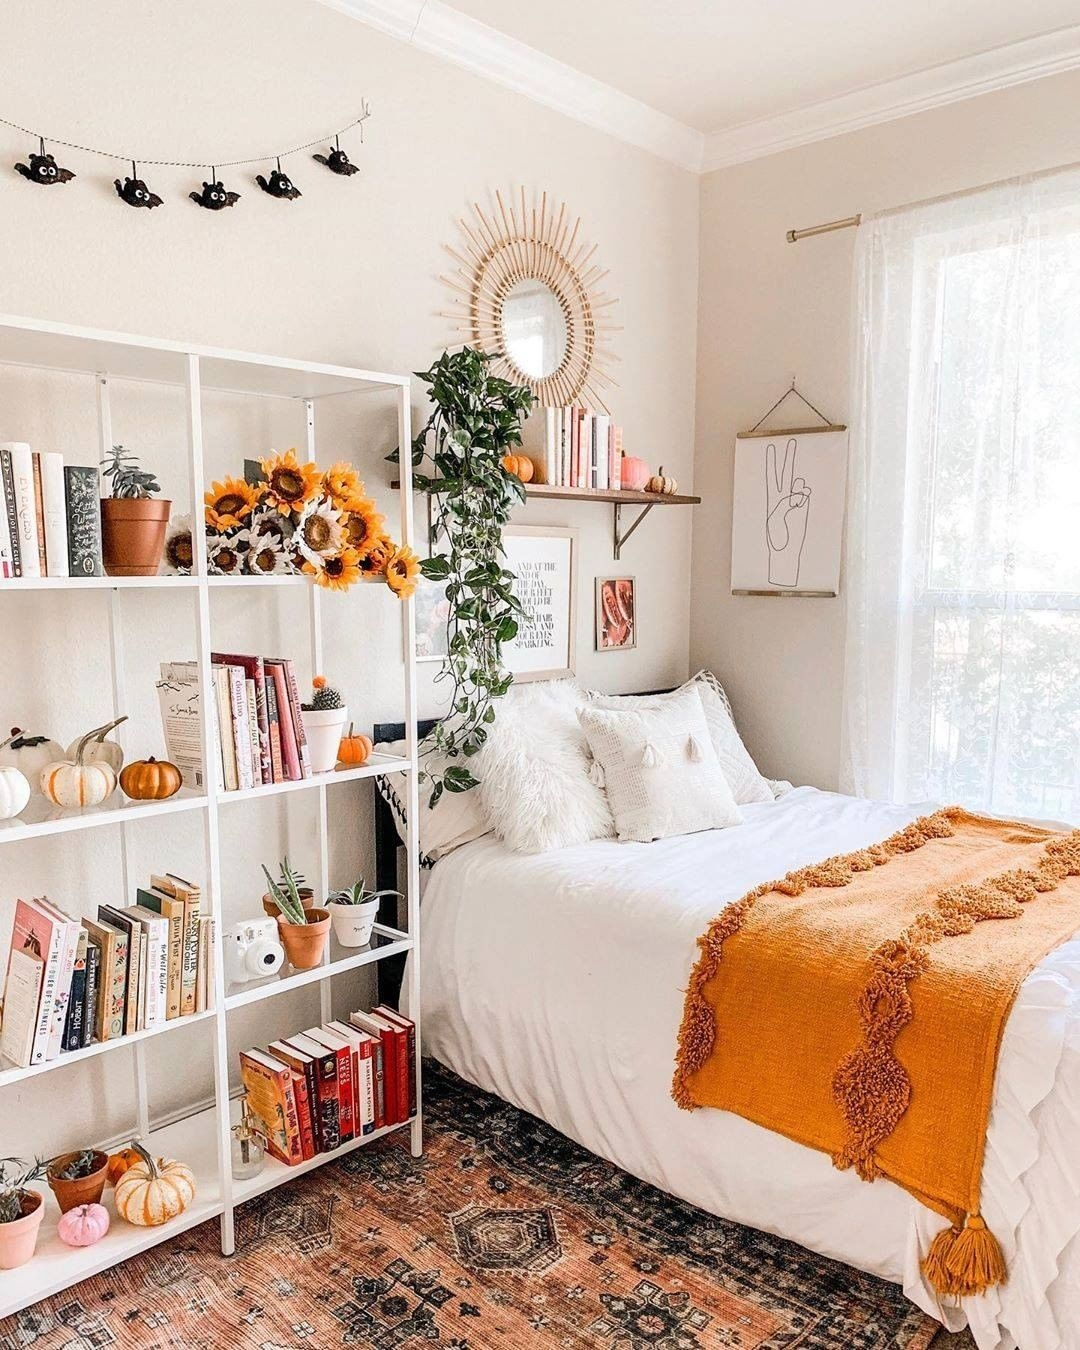 33ab62f100cec6f a6afd9bd9a6 on Bohemian Home Decorating Ideas Bedroom id=1004880